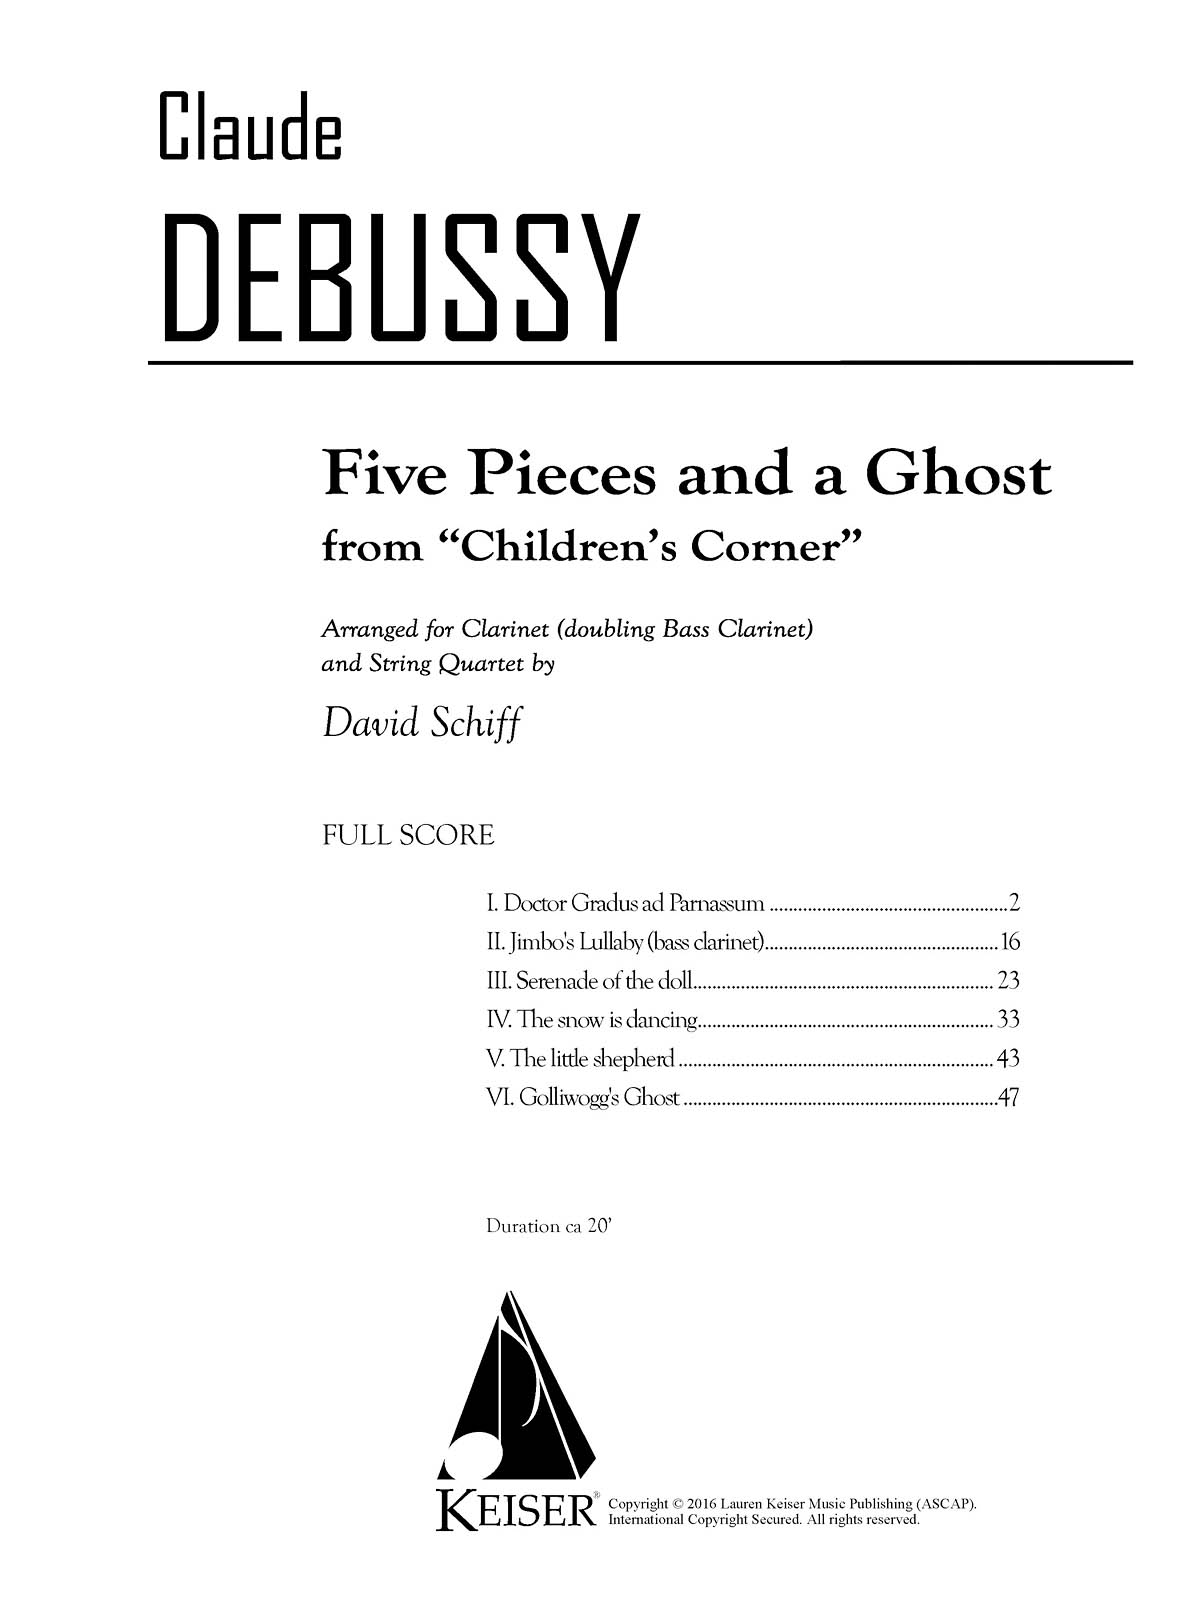 5 Pieces and a Ghost from Children